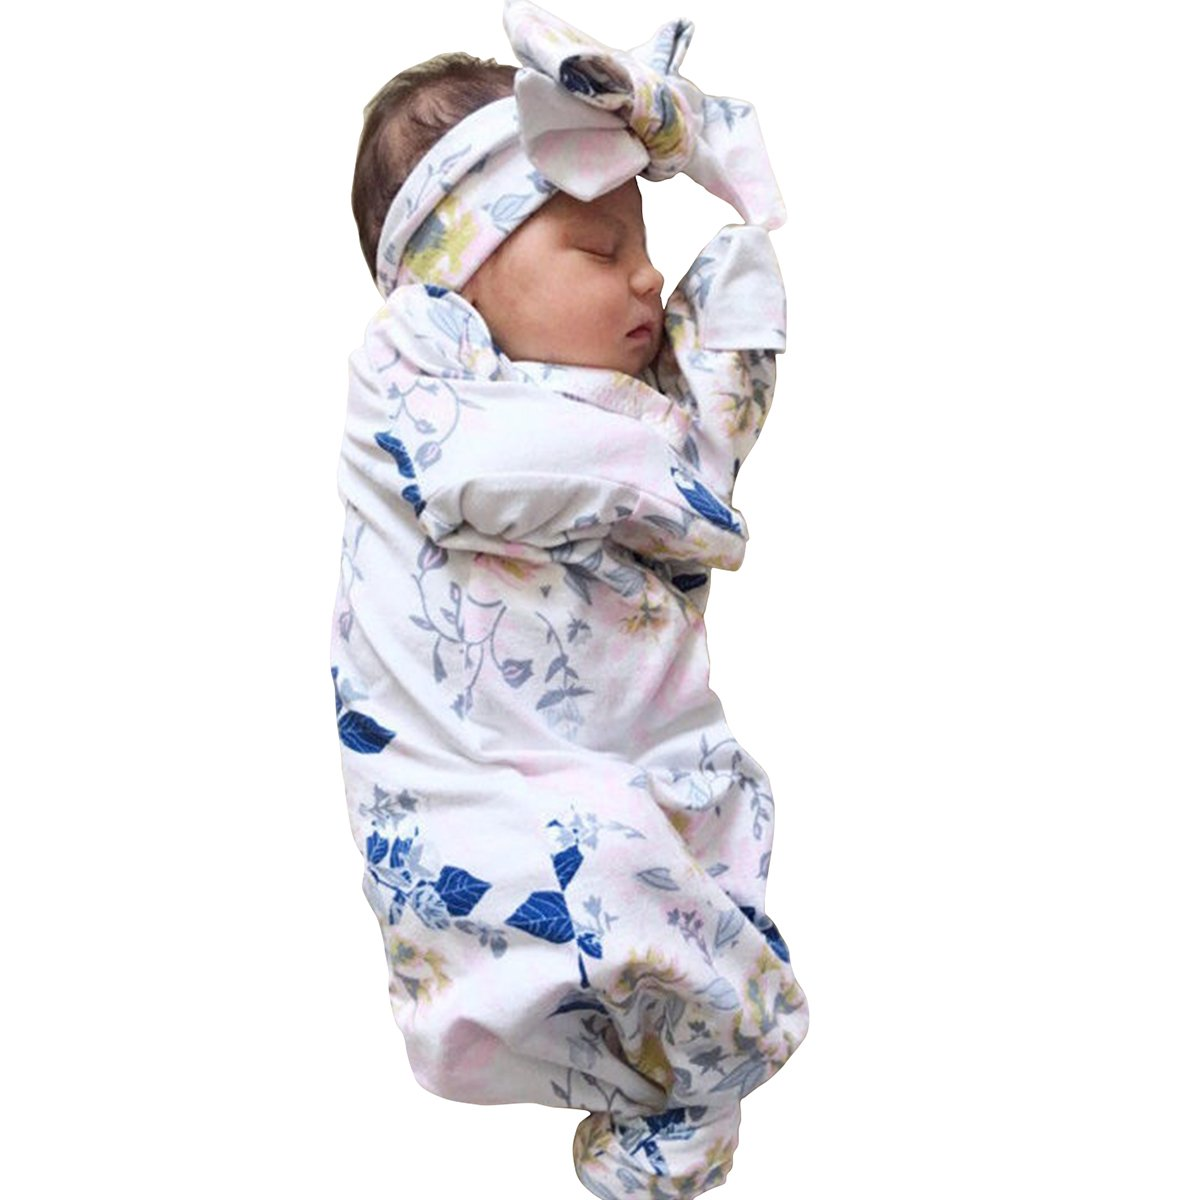 Newborn Baby Girl Boy Floral Wearable Blanket with Headband Gown Coming Home Outfit Gift Safe Sleeping Bag for Infant 0-3M